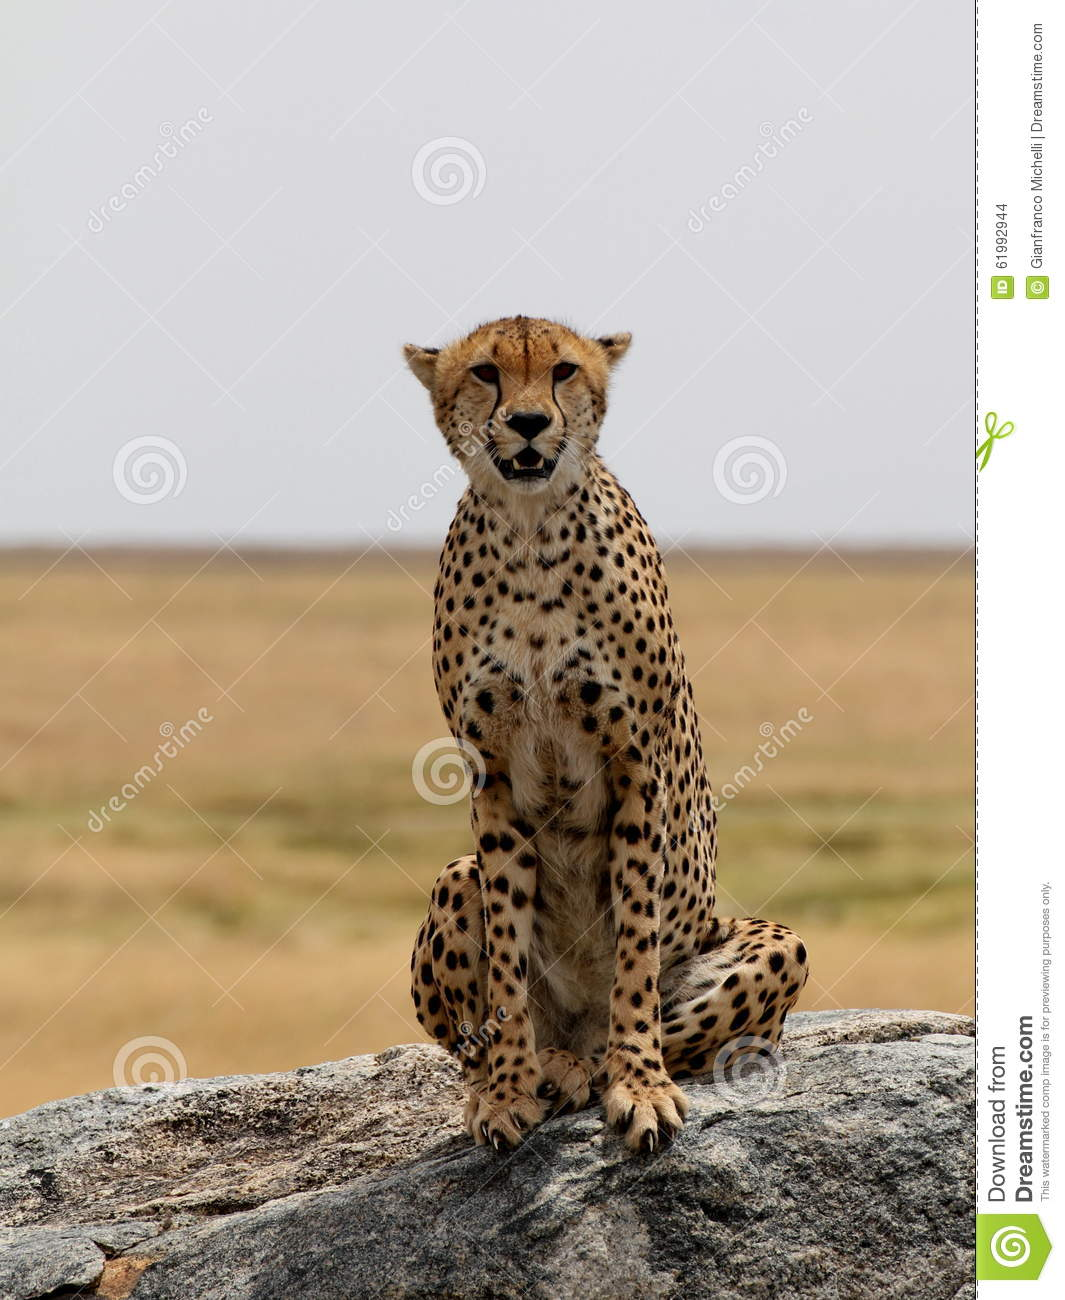 Cheetah sitting on a rock